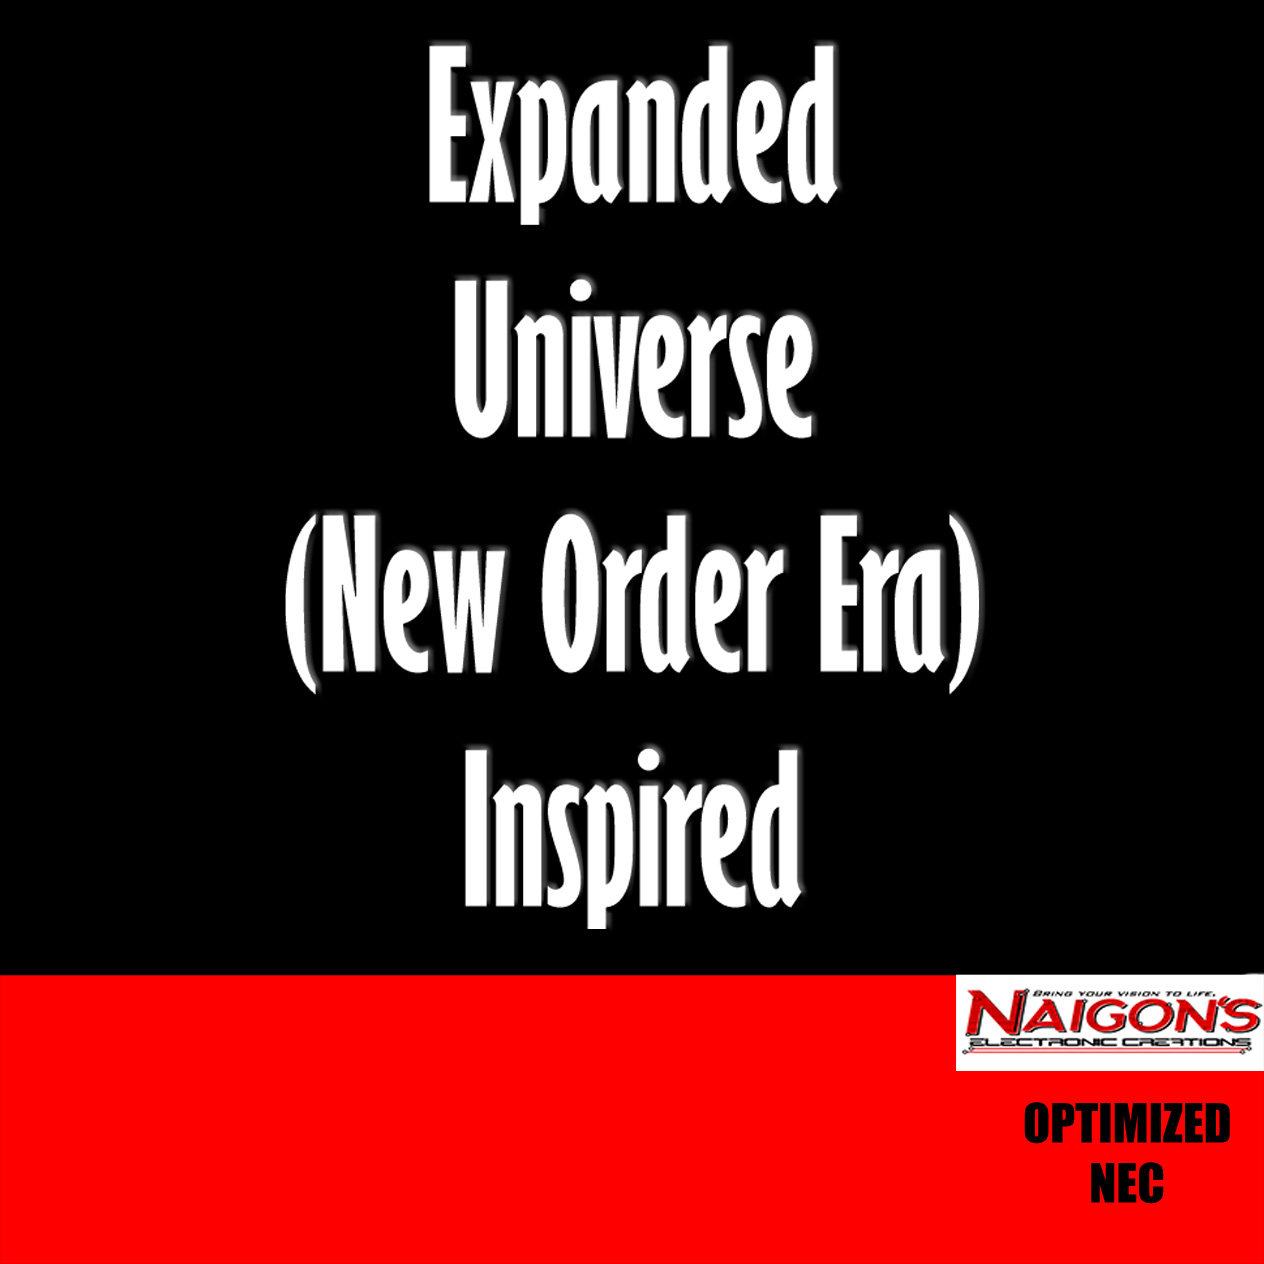 Expanded Universe (New Order Era) Inspired for NEC